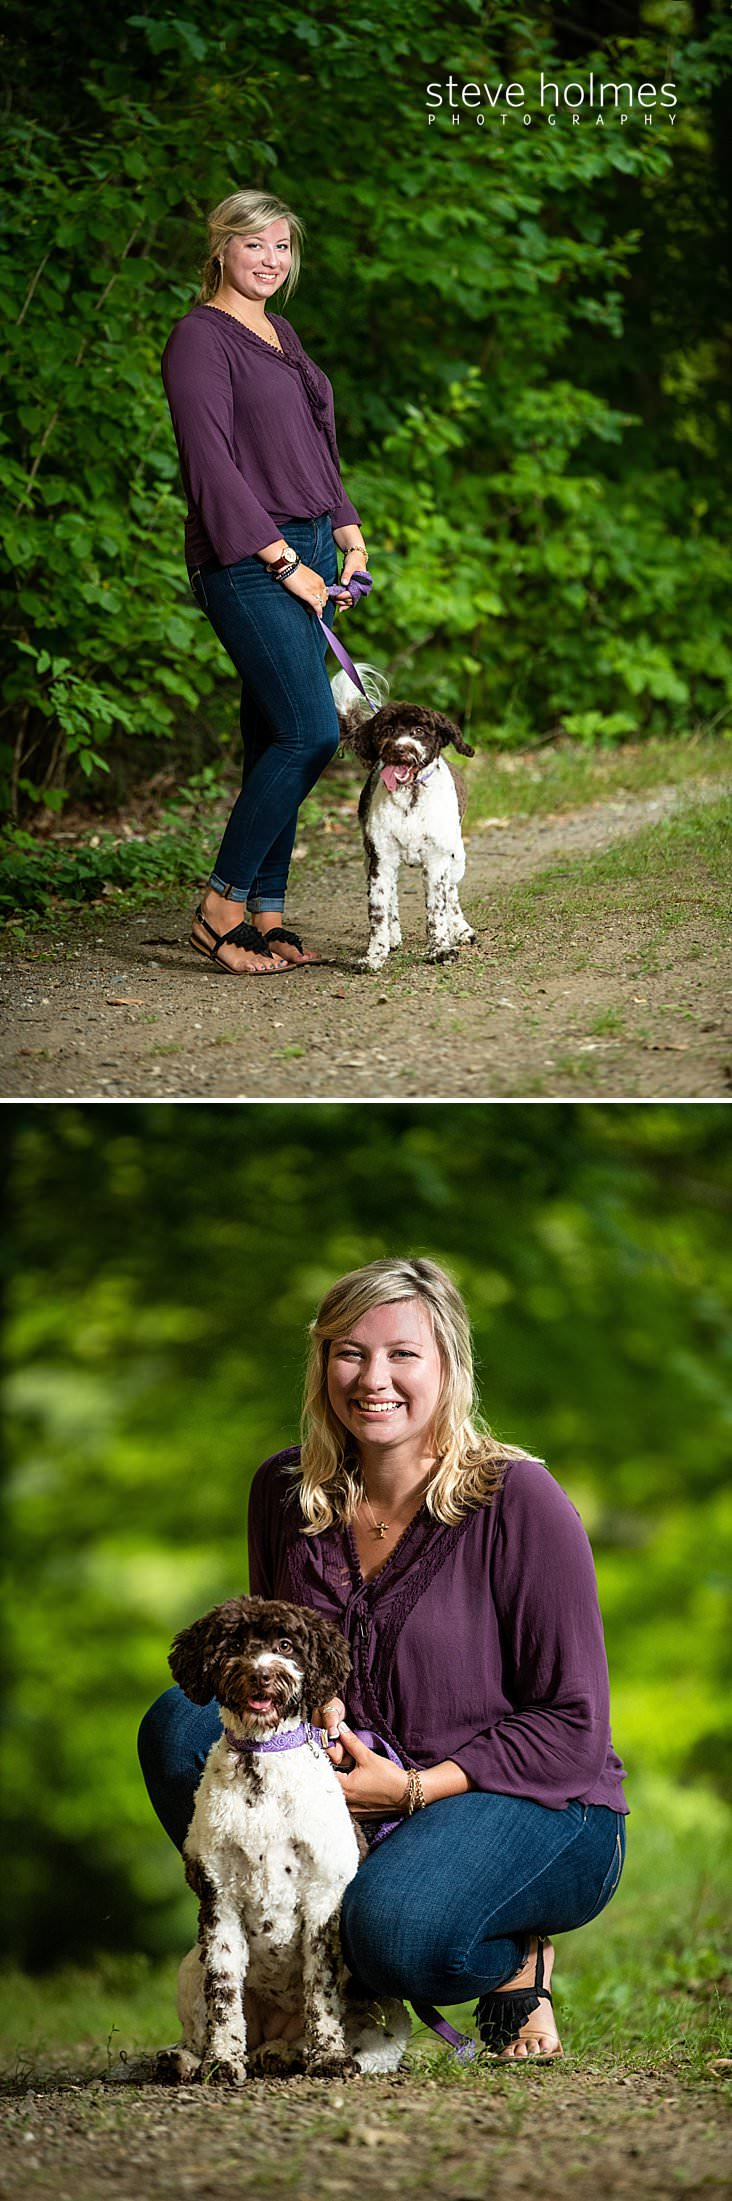 06_Blonde teen in jeans and purple blouse walks her dog on country path.jpg